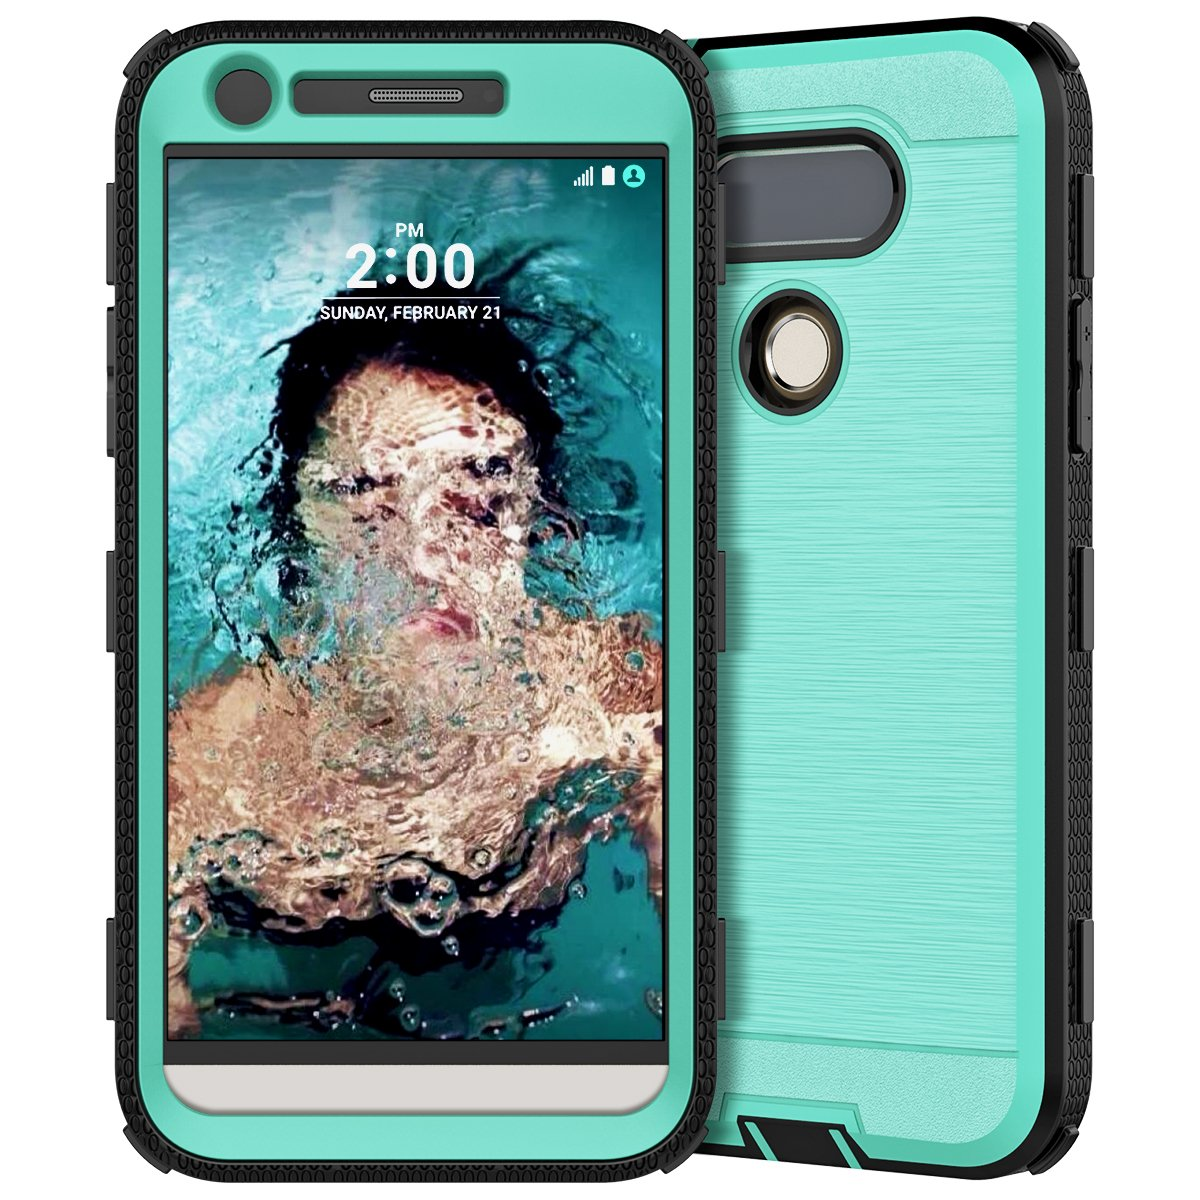 LG G5 Case, CinoCase Heavy Duty Rugged Armor Protective Case Hybrid TPU Bumper Shockproof Case with Brushed Metal Texture Hard PC Back for LG G5 (2016) Mint